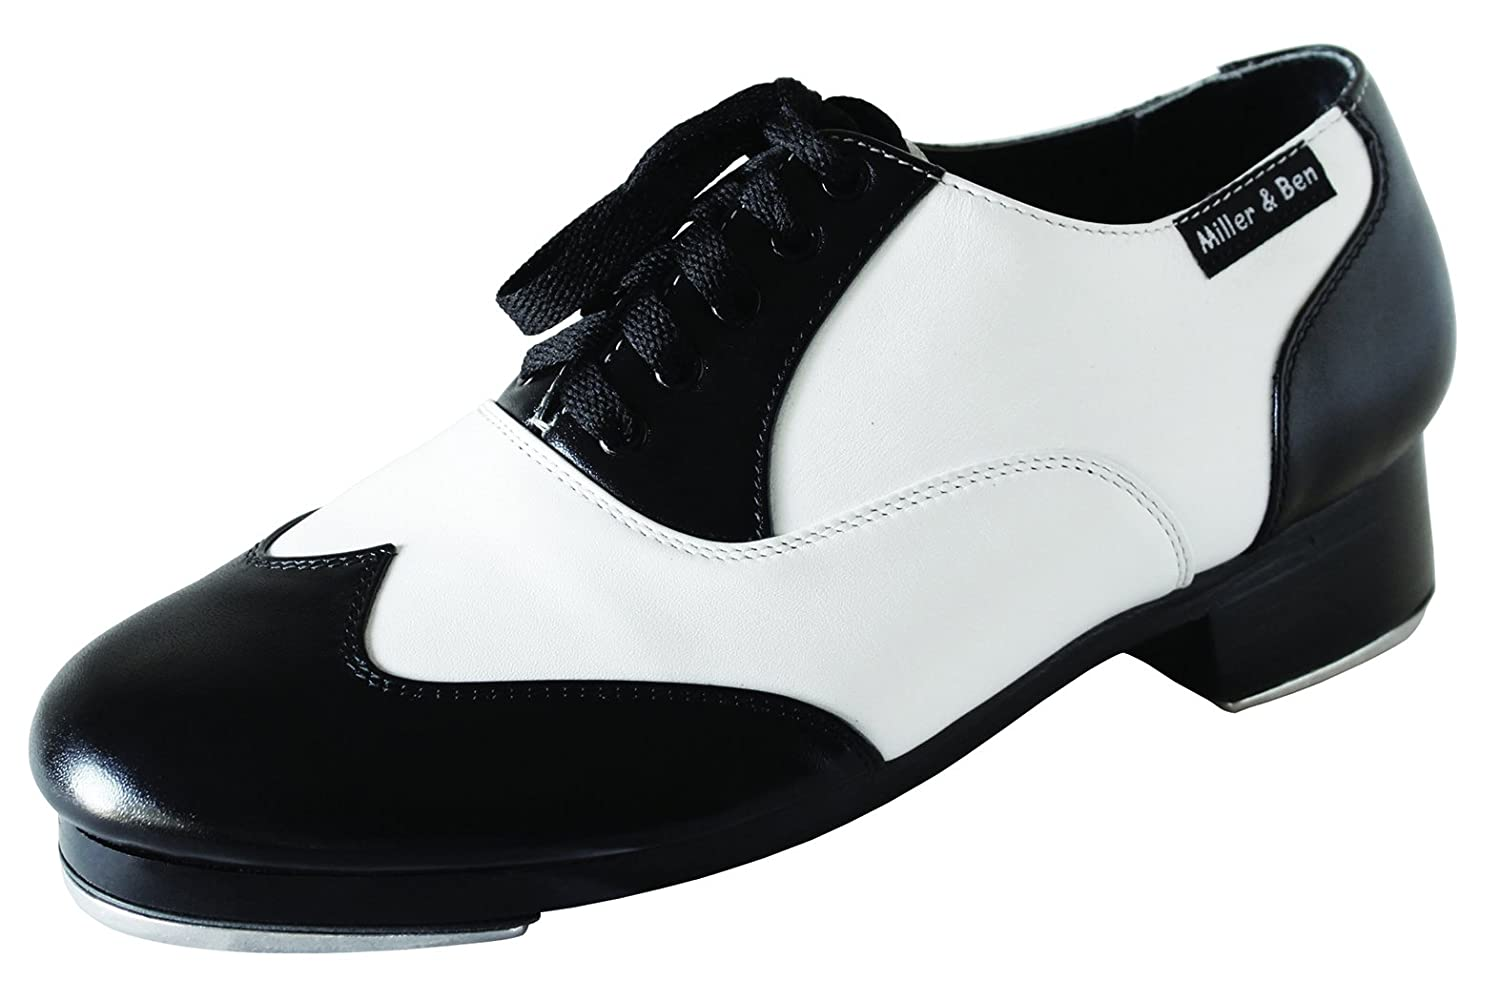 1920s Boardwalk Empire Shoes Miller & Ben Tap Shoes Jazz-Tap Master Black & White - STANDARD SIZES $285.00 AT vintagedancer.com